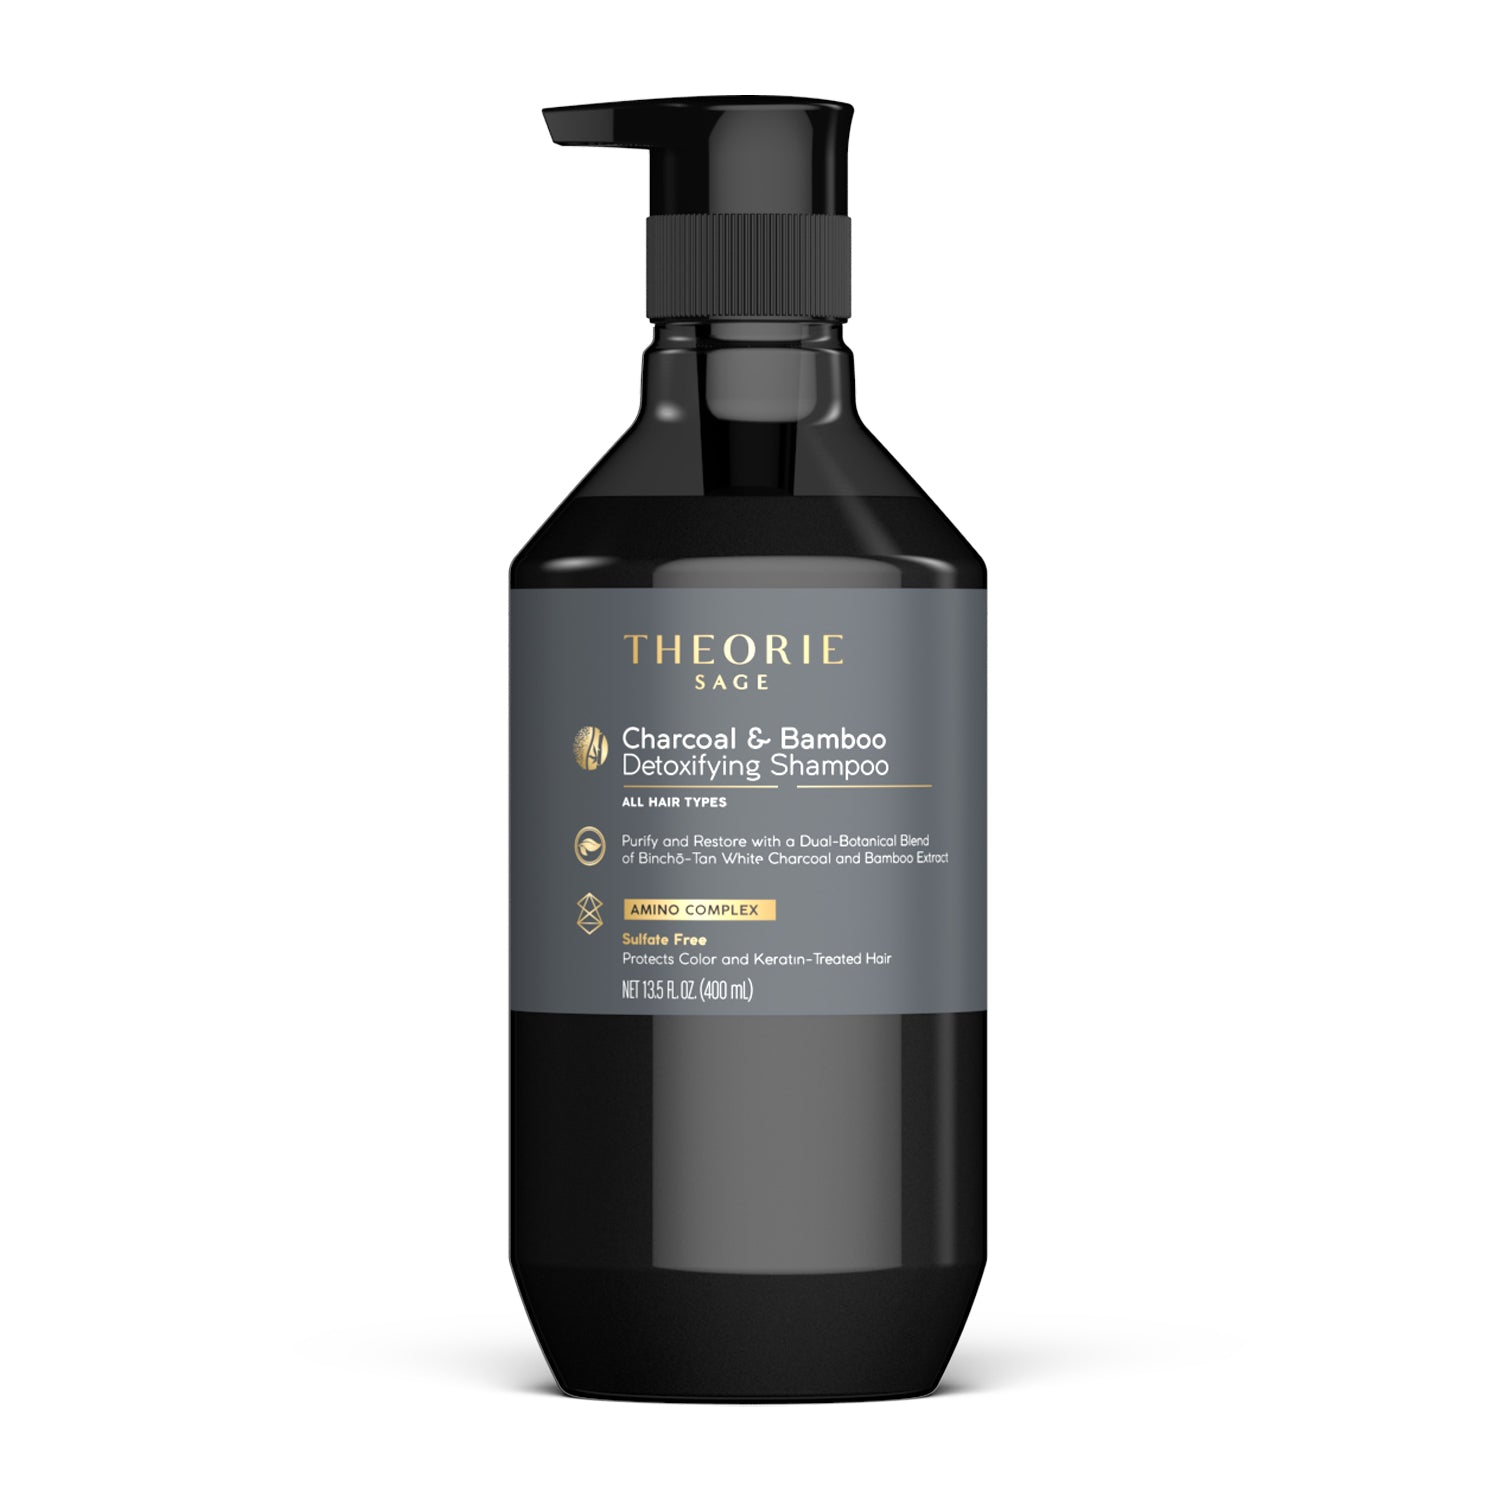 Theorie: Sage - Charcoal & Bamboo Detoxifying Shampoo